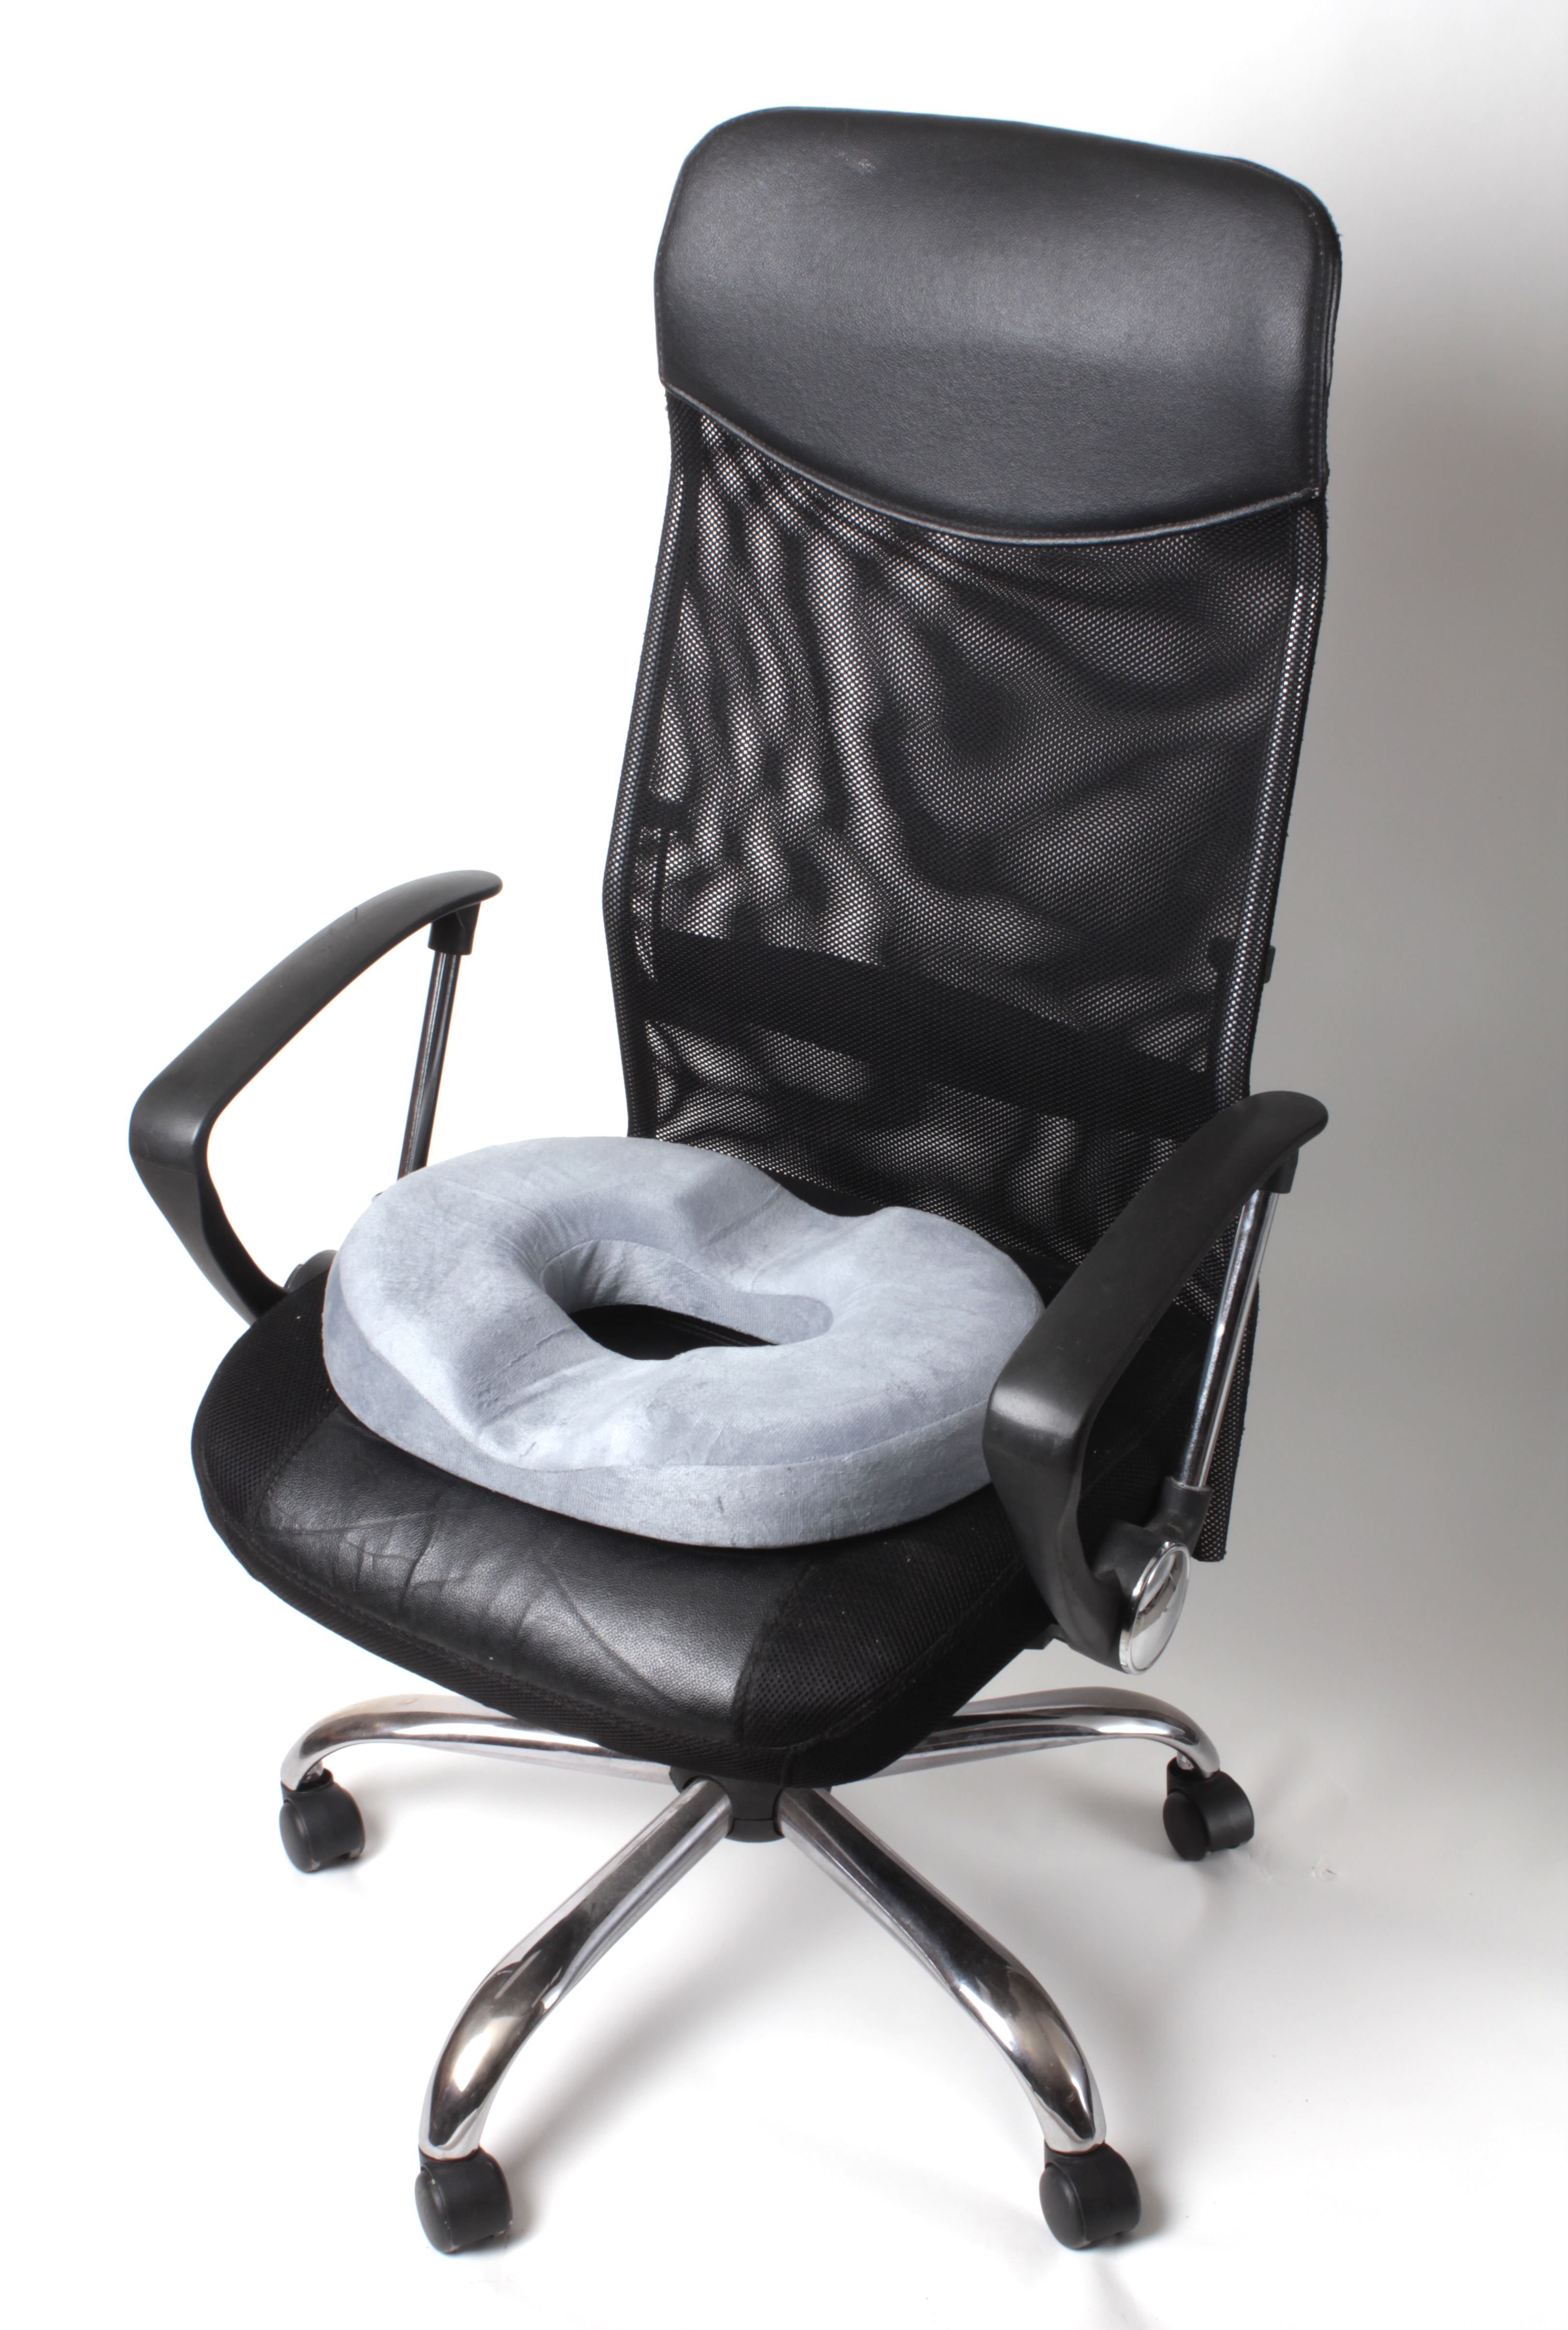 item chair pillow in black cushion lumbar aliexpress office on garden seat orthopedic com foam group alibaba home from comfort support coccyx